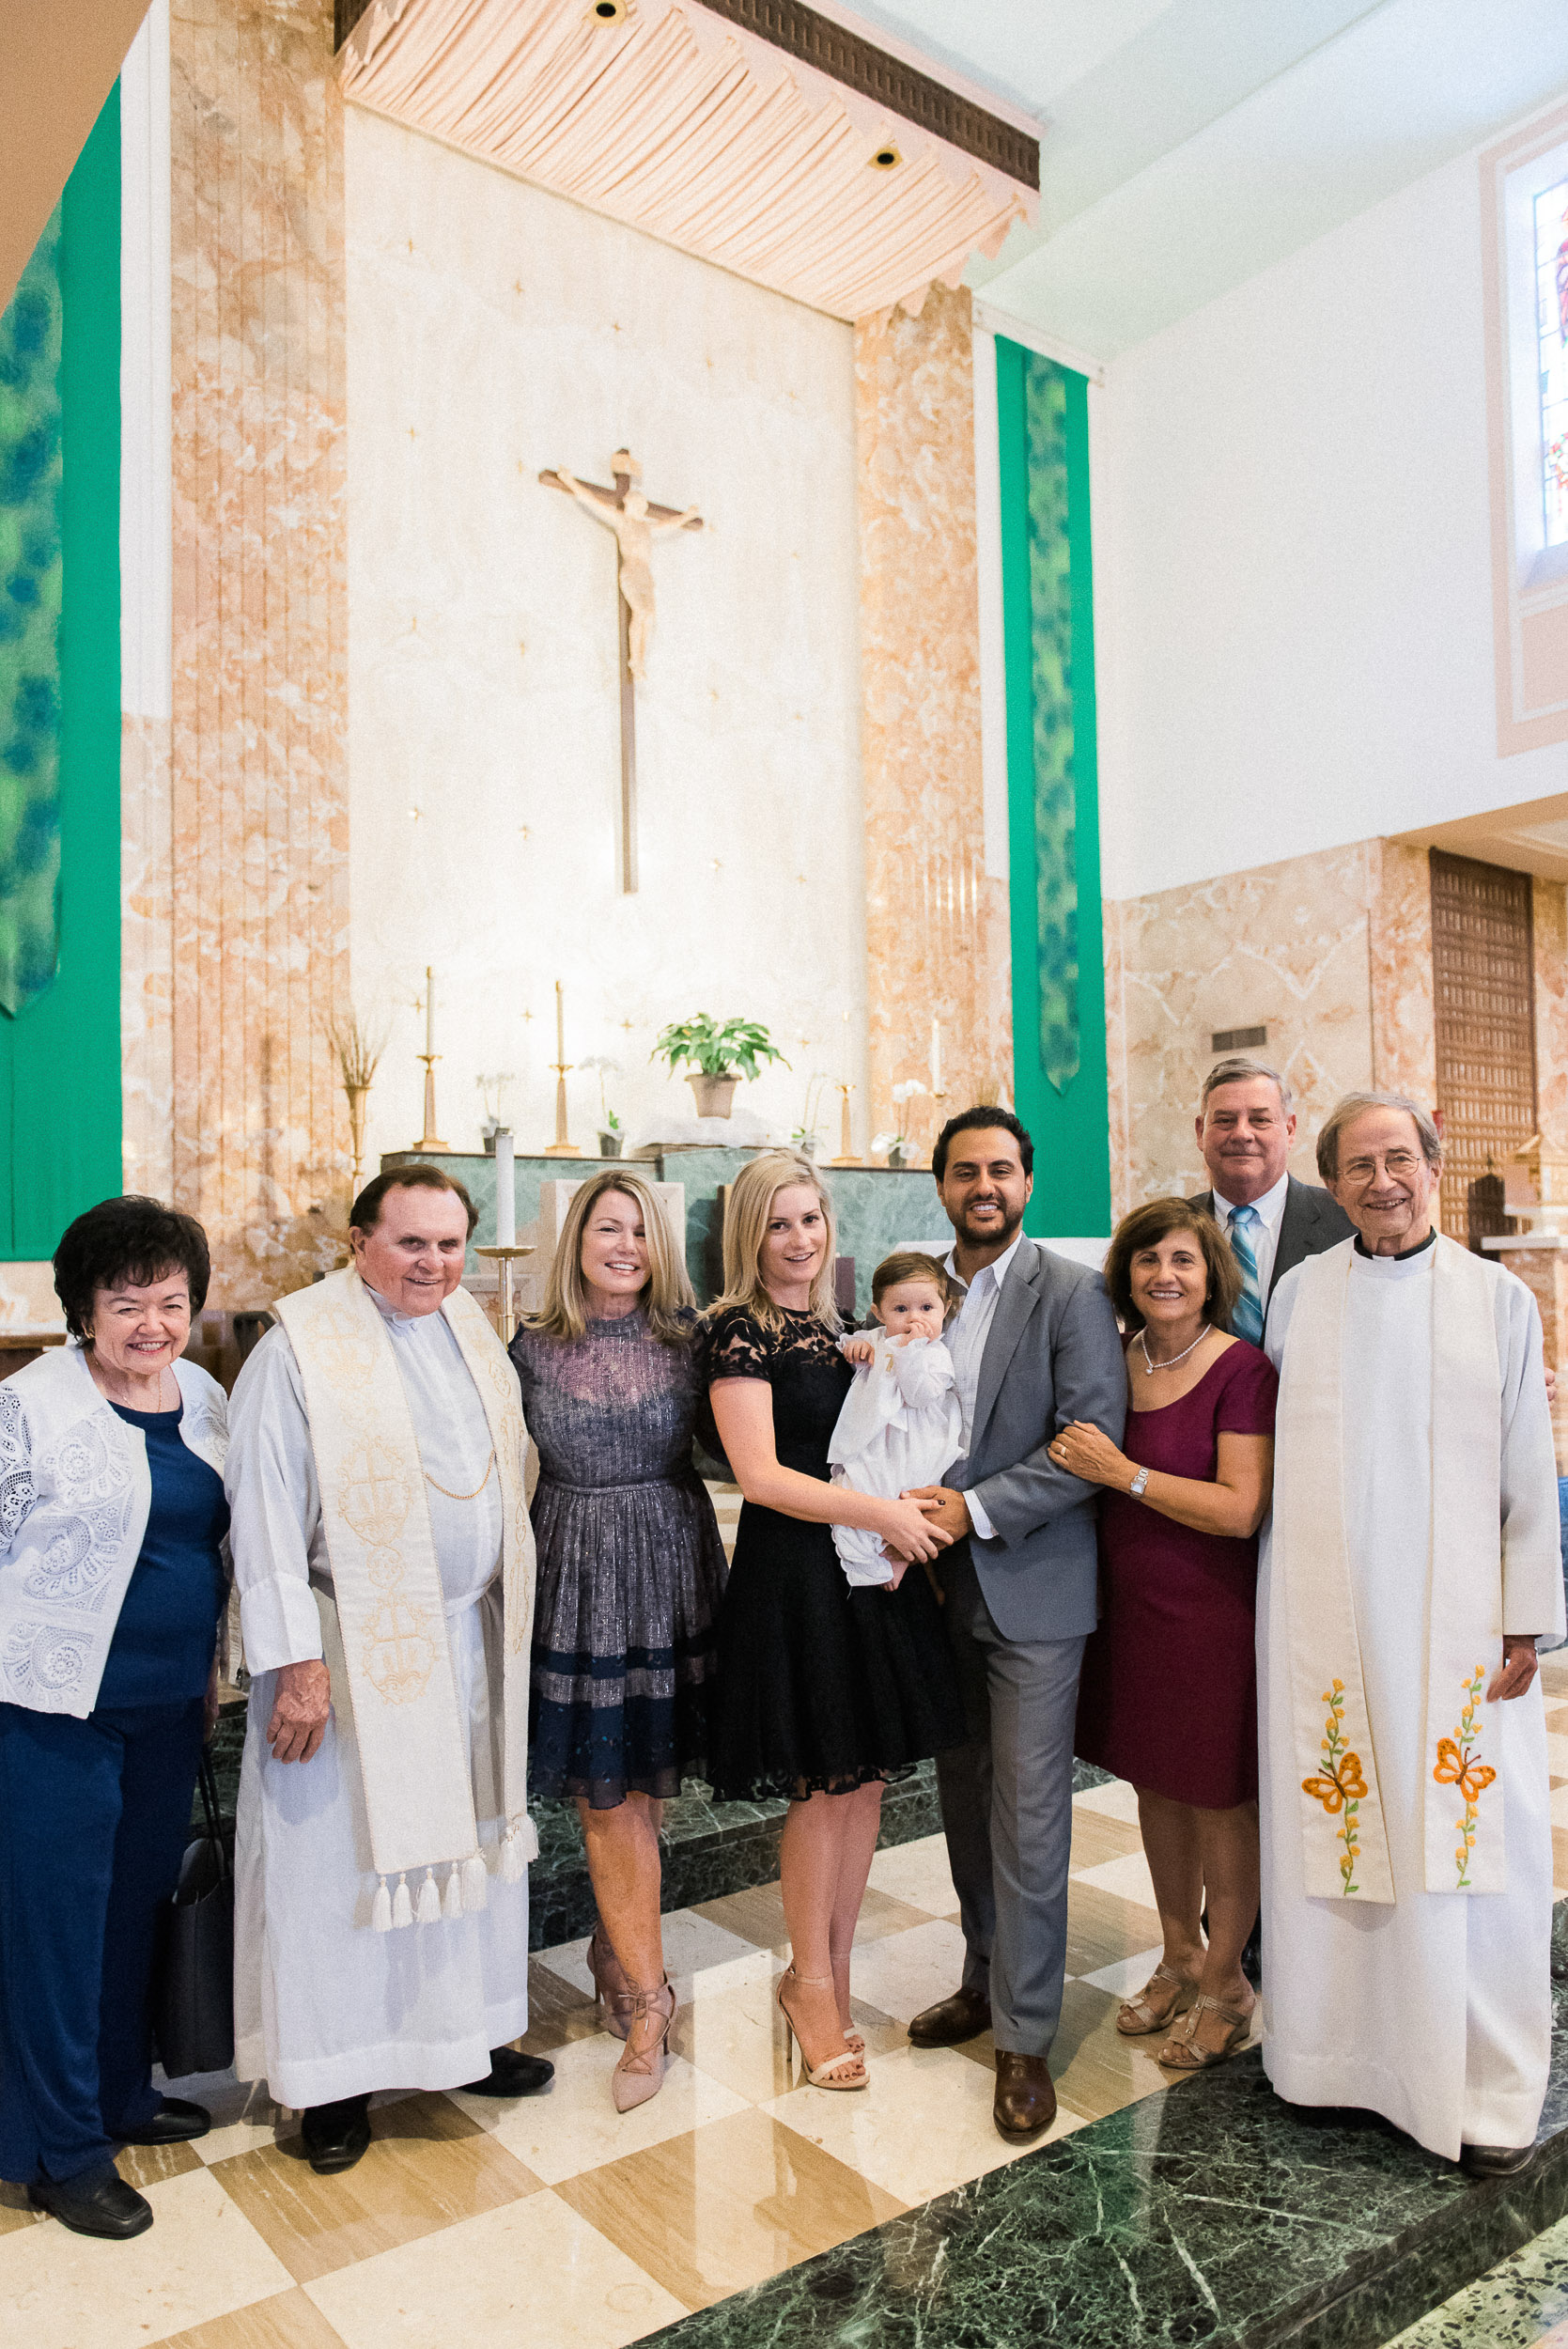 Bryan-Miraflor-Photography-Our-Lady-of-Grace-Neave-Baptism-20161009-0182.jpg